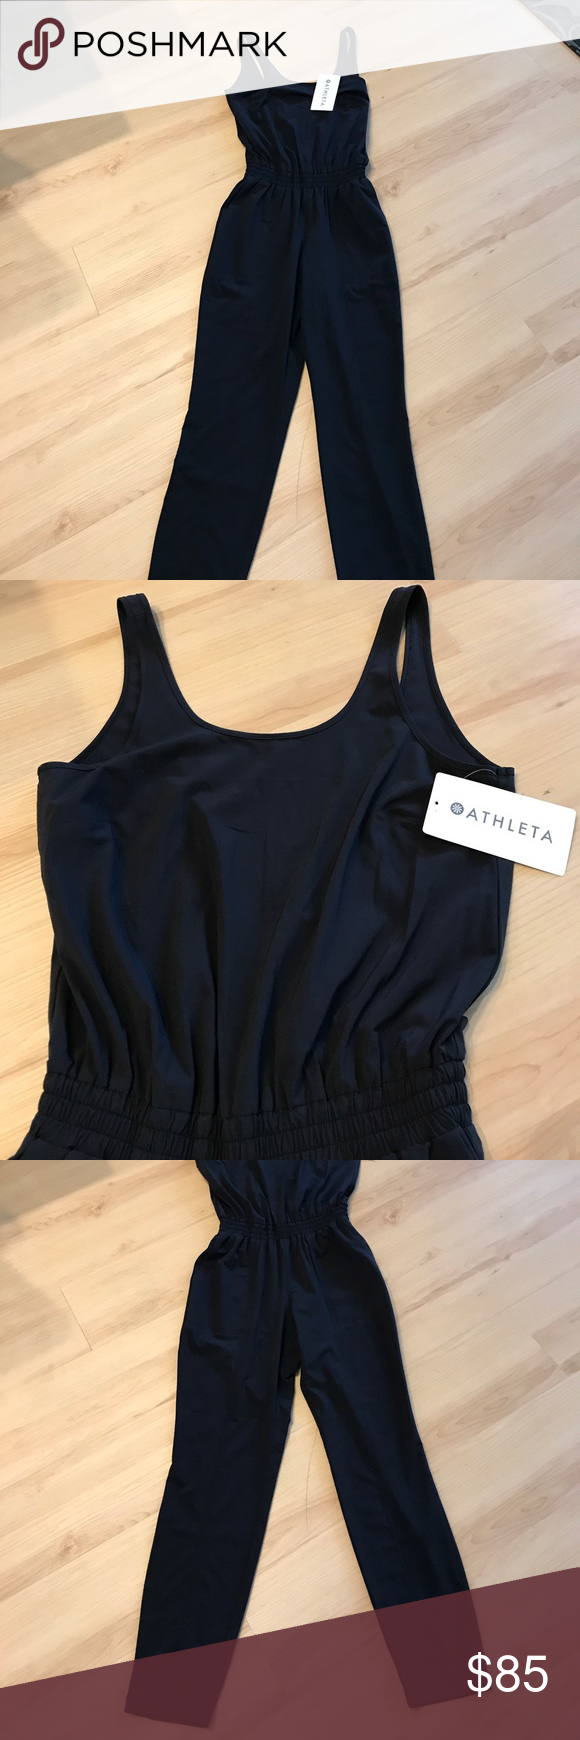 312d255b5df Athleta Roaming Romper New w tag Athleta Other